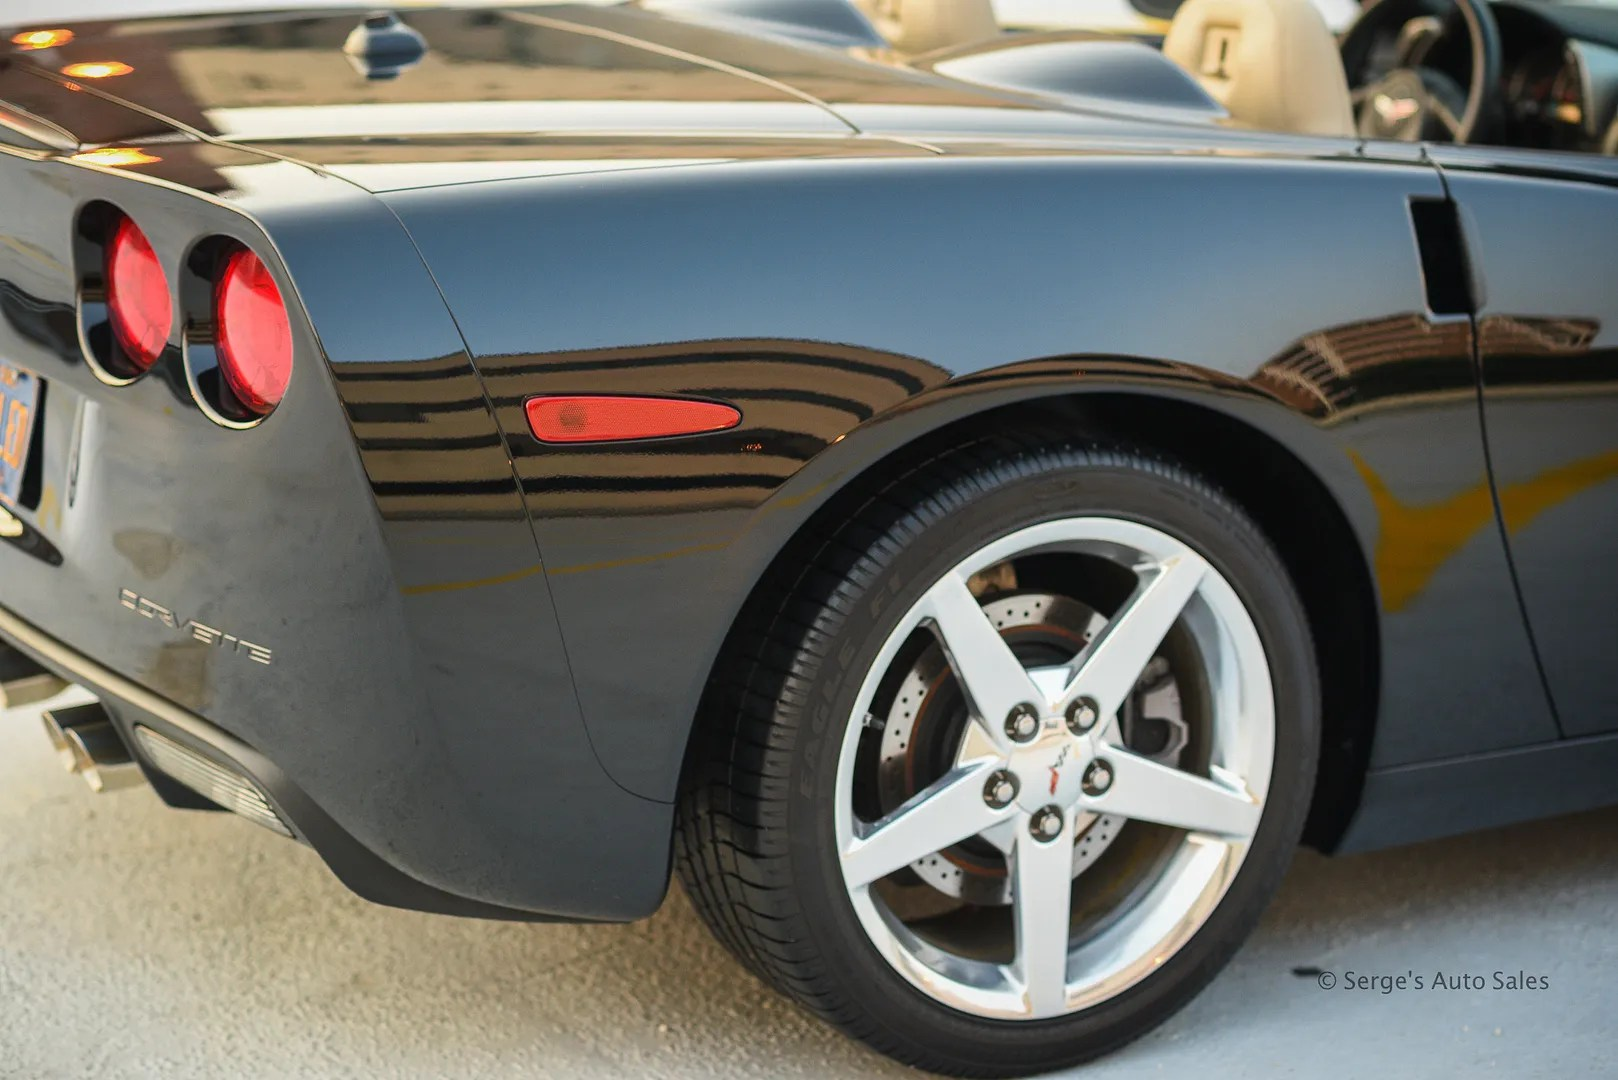 photo 2005-C6-Corvette-Convertible-For-Sale-Scranton-Serges-Auto-Sales-dealer--42_zps8nhgjtav.jpg